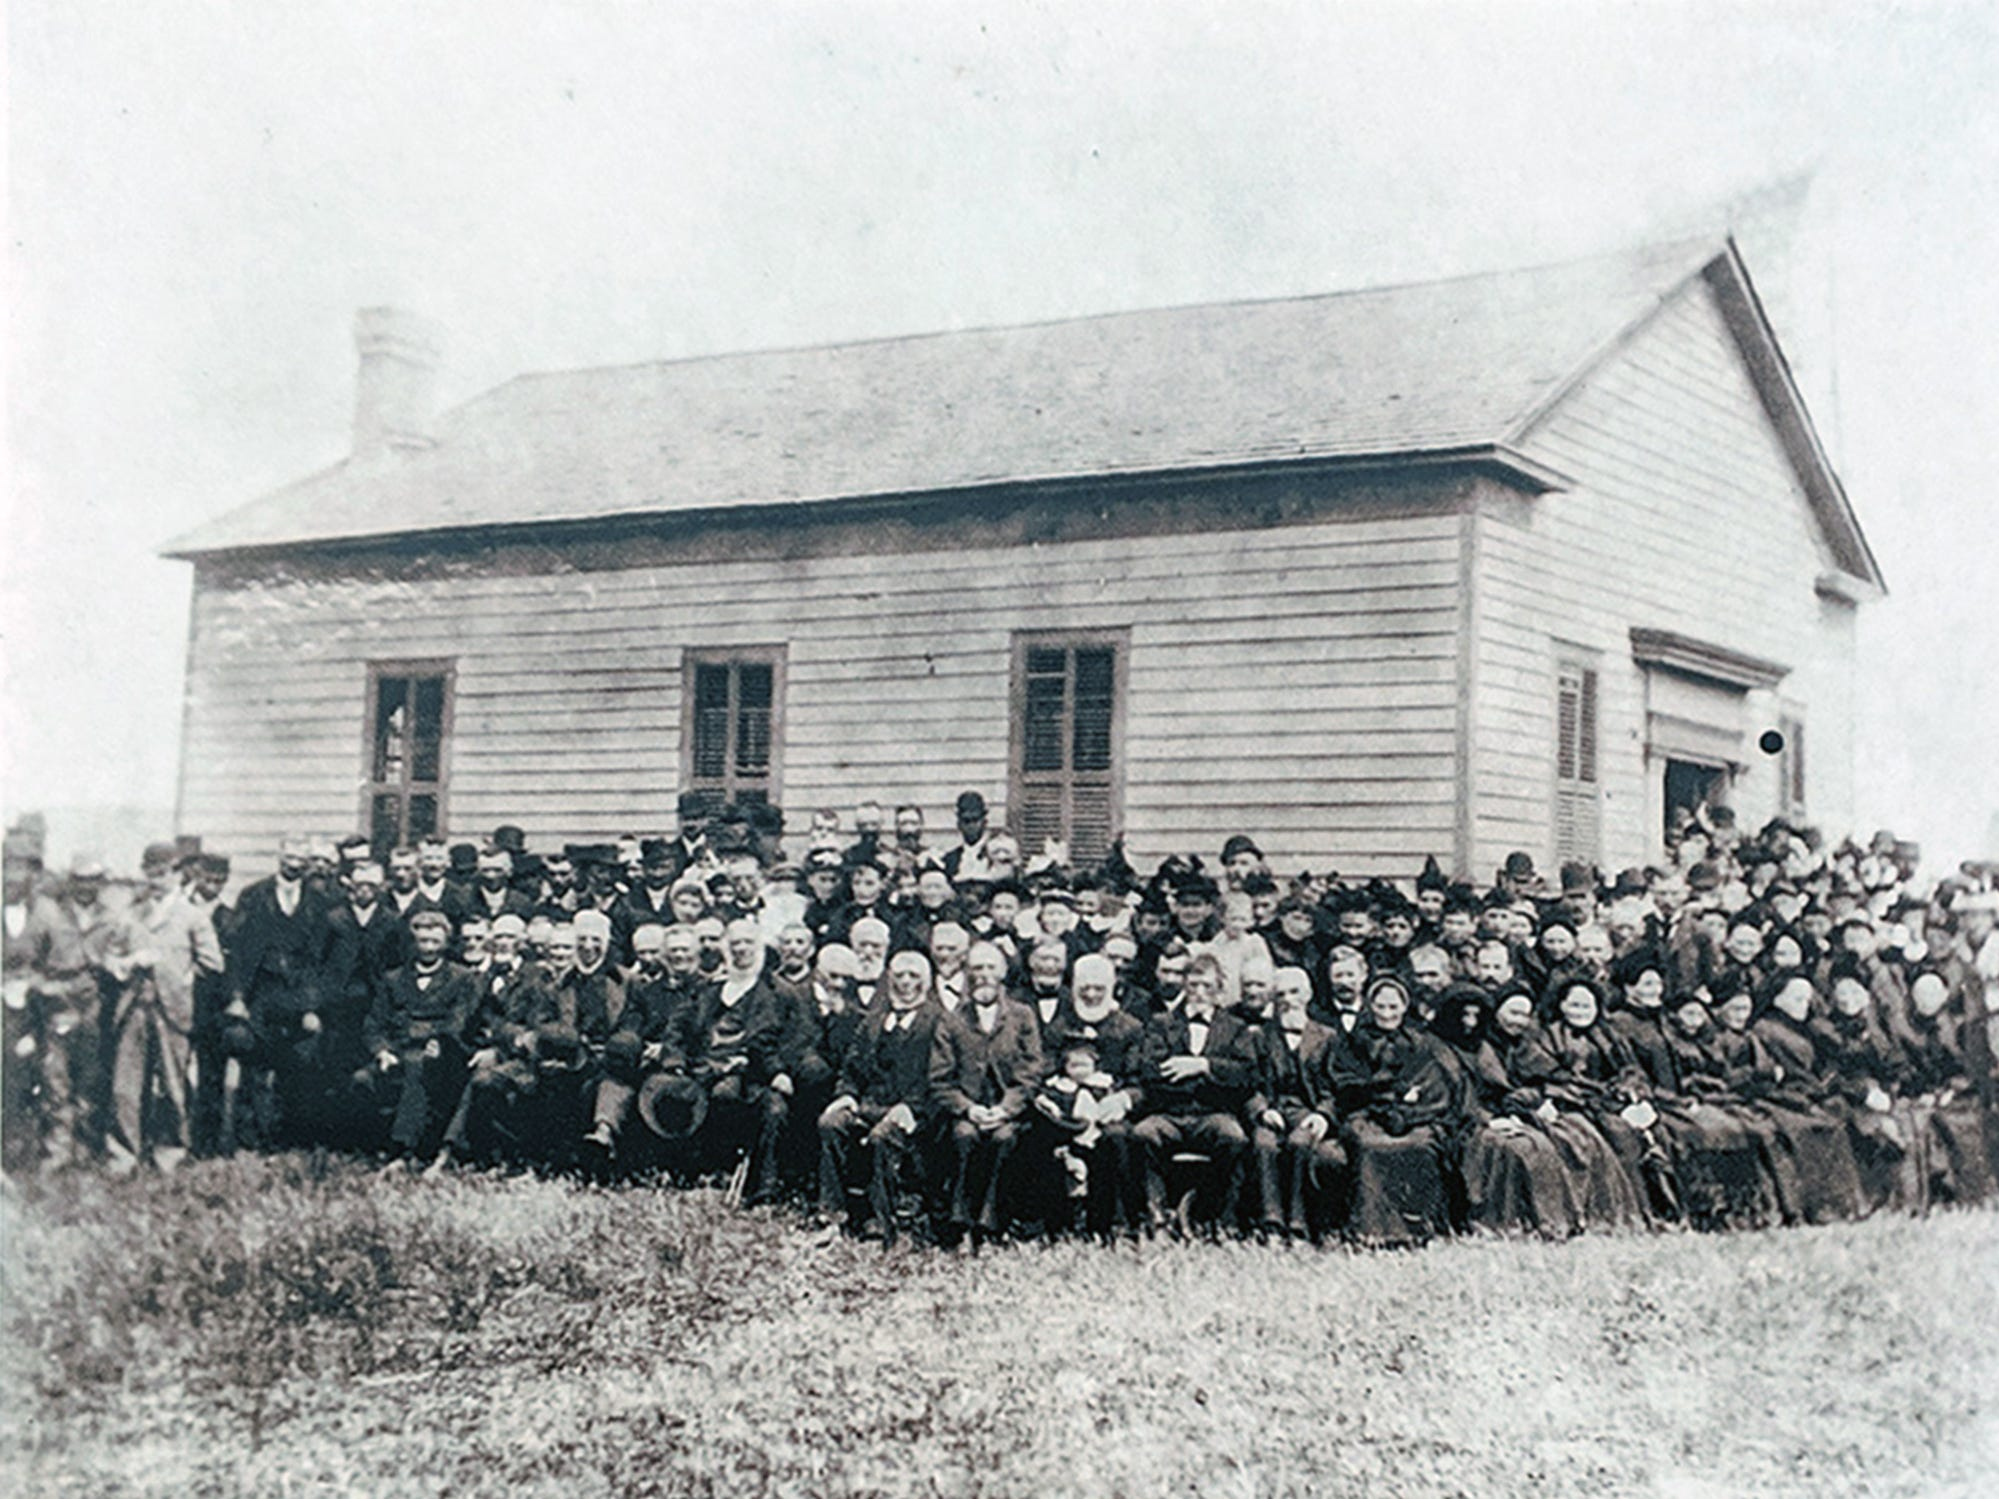 The Welsh Congregational Church was built in 1857. Virtually all  of the people are immigrants. This picture is mounted on an interpretive board in Coulsontown in front of the Welsh quarrymen's cottages.